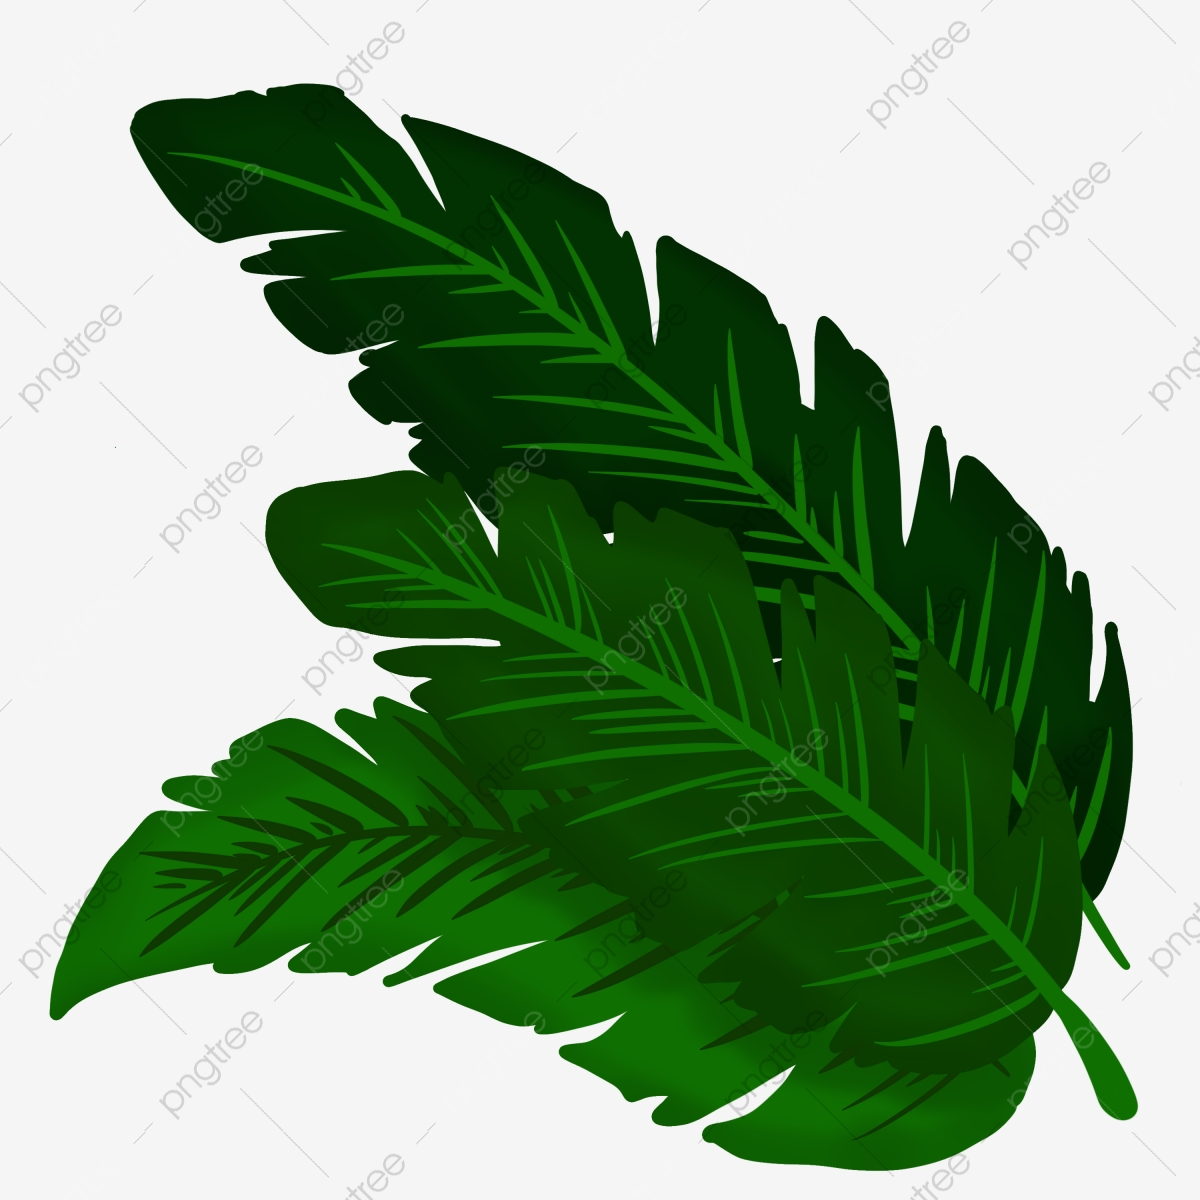 Tropical Rainforest Plant Leaves Summer Plants Green Leaves Png Transparent Clipart Image And Psd File For Free Download 115,000+ vectors, stock photos & psd files. https pngtree com freepng tropical rainforest plant leaves 4592639 html